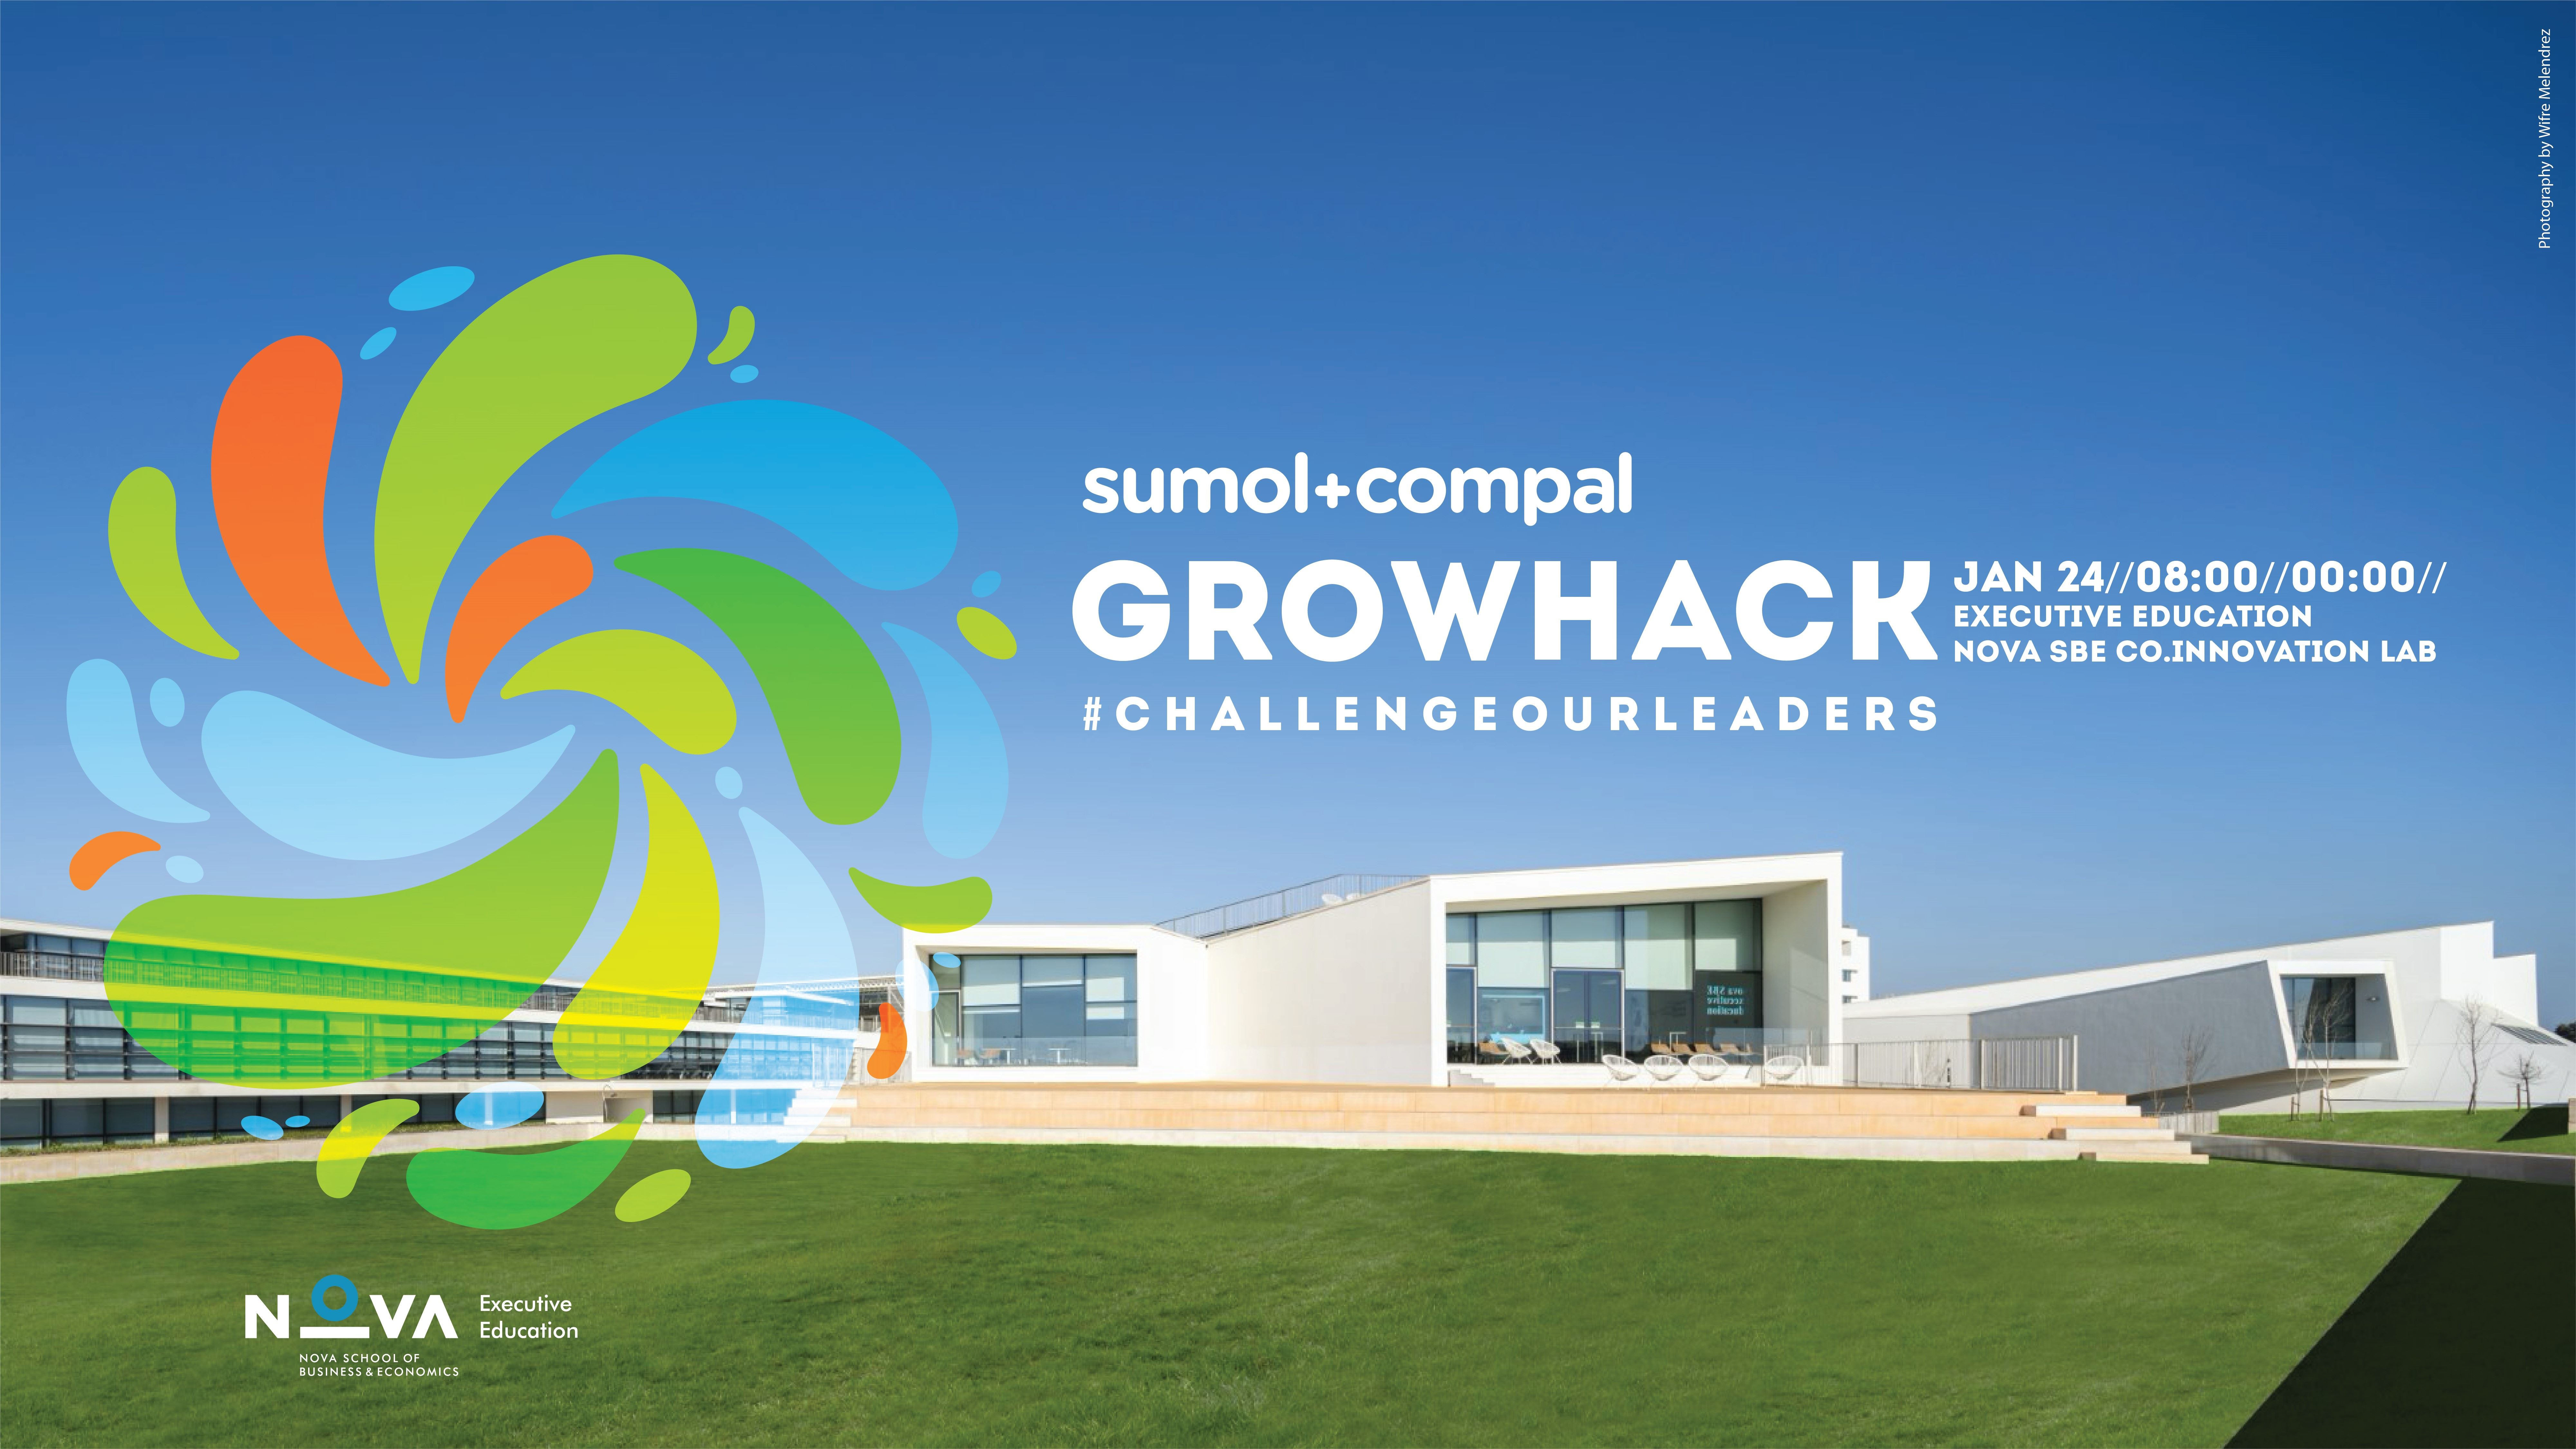 SUMOL+COMPAL GrowHACK | Challenge Our Leaders